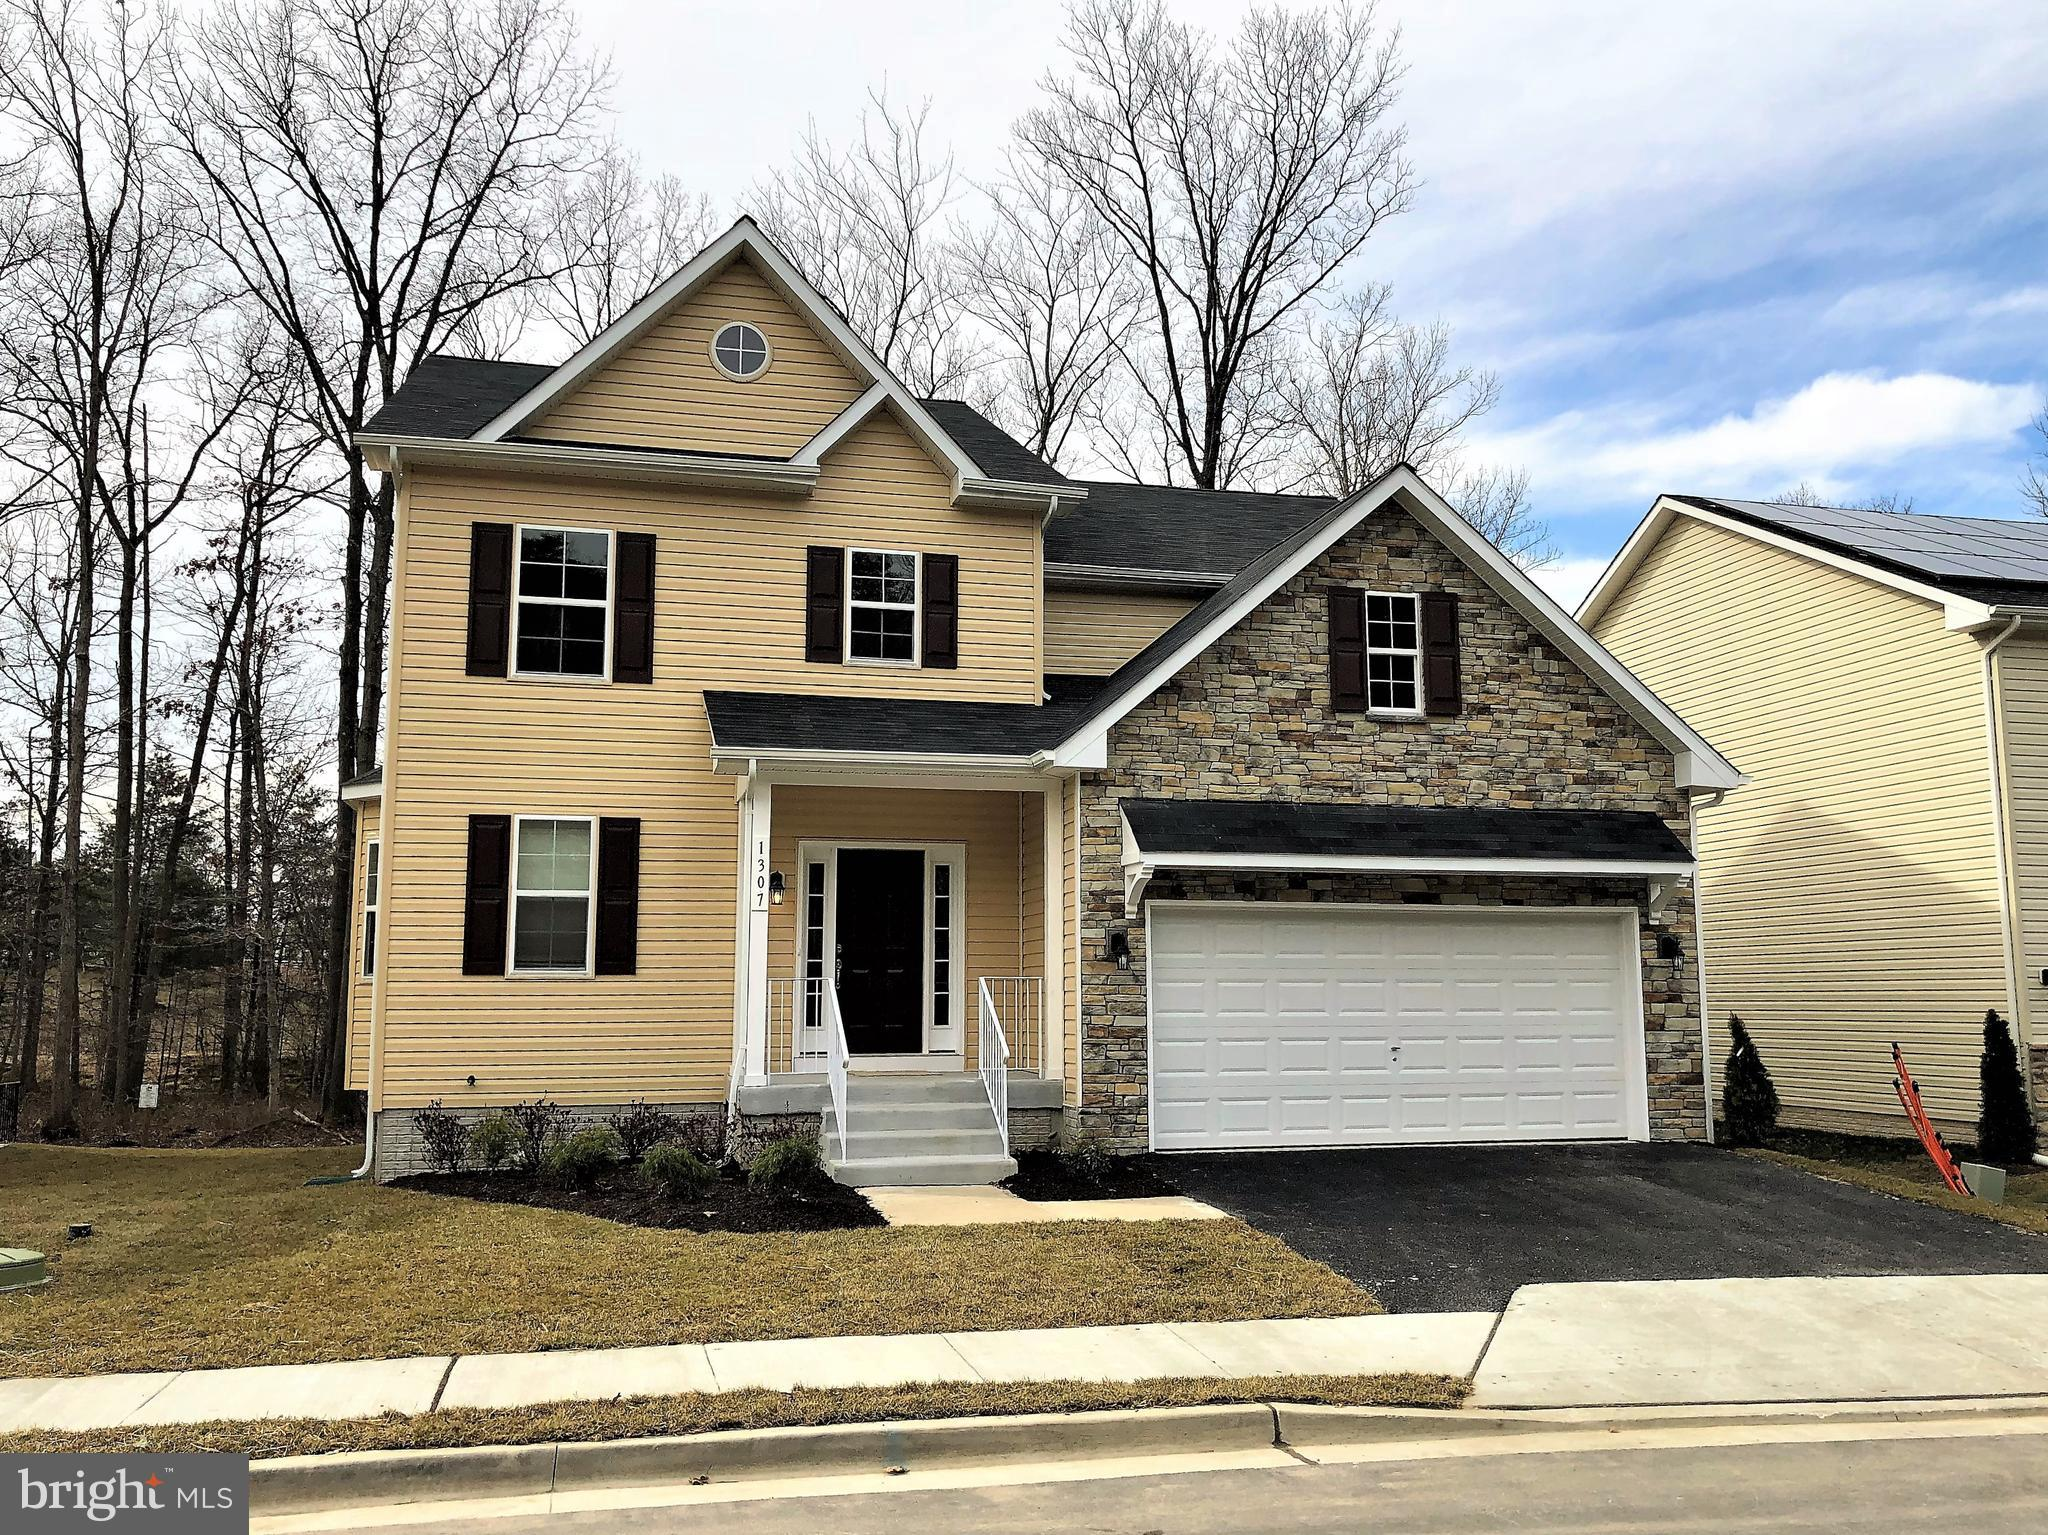 1307 PATUXENT WOODS DRIVE, ODENTON, MD 21113